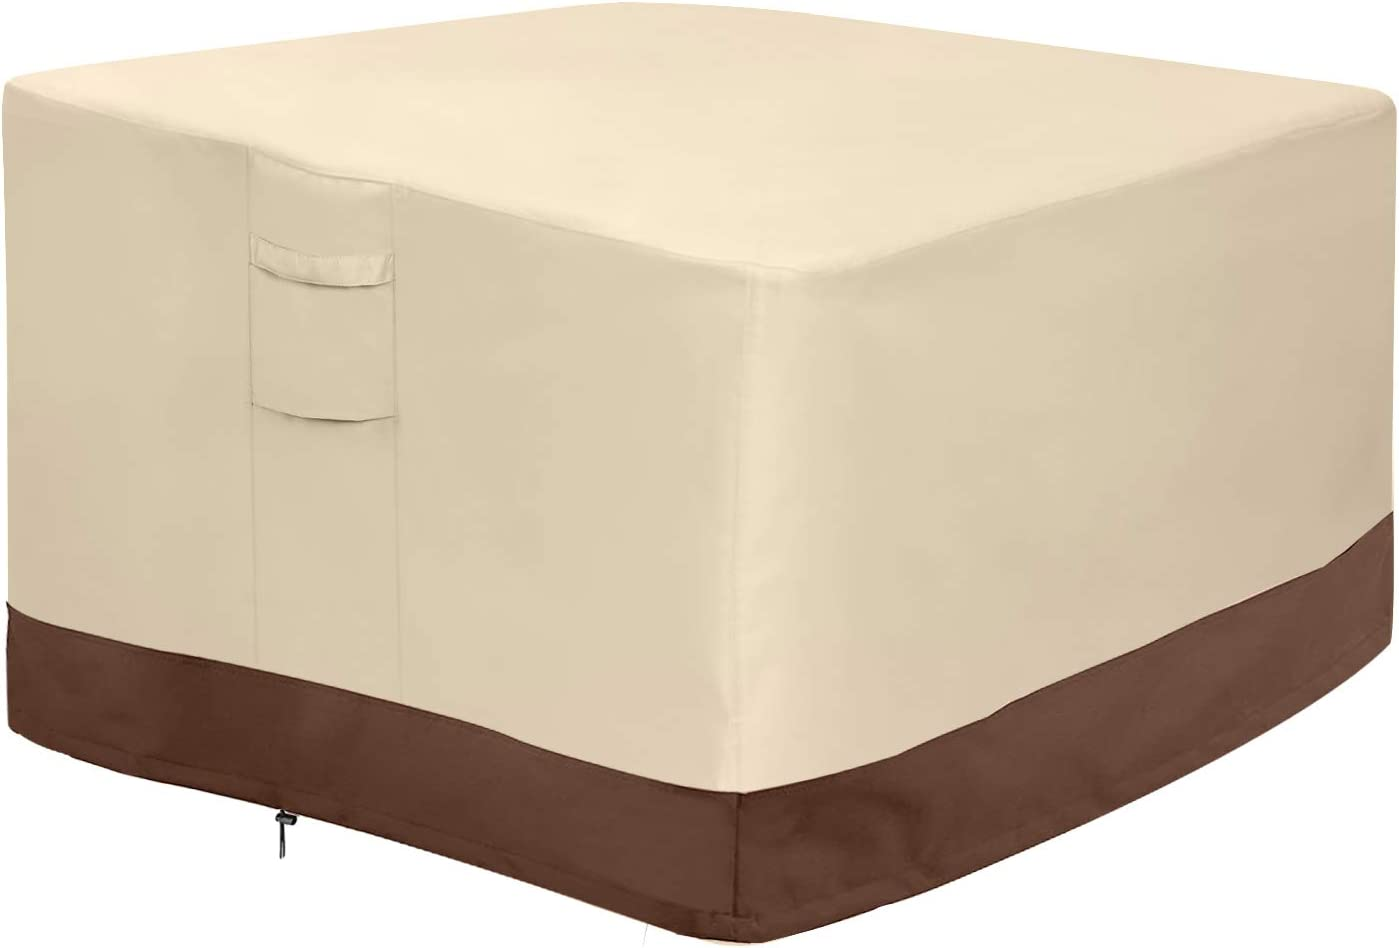 """Vailge Fire Pit Cover,100% Waterproof Square Gas Firepit Table Cover,Outdoor Heavy Duty Lawn Patio Furniture Covers with Air Vent and Handle,36"""" L x 36"""" W x 20"""" H,Beige & Brown"""